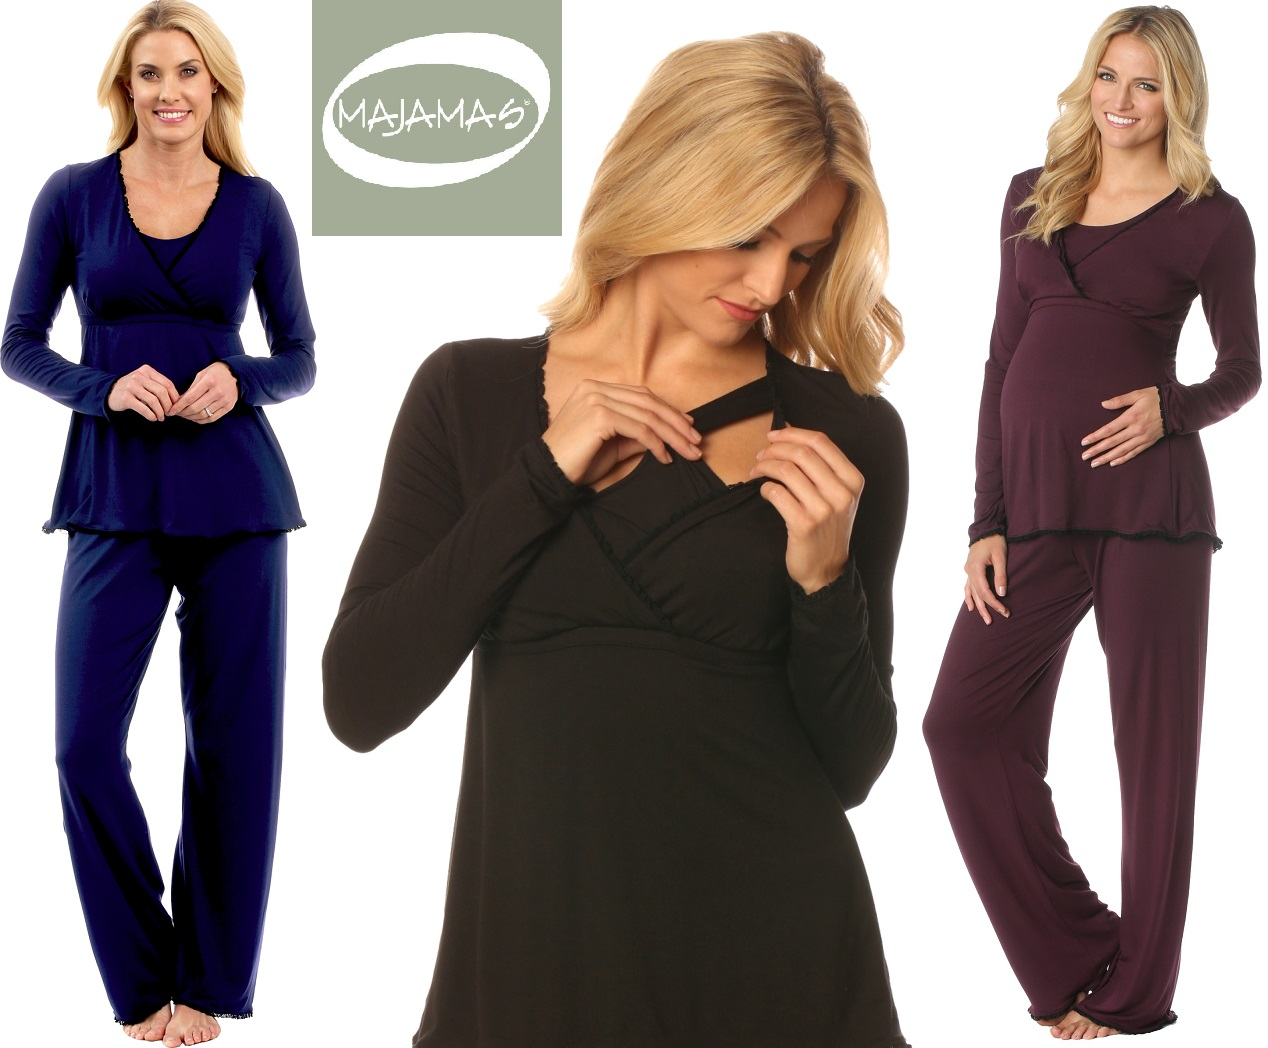 majamas-margo-nursing-pjs-all.jpg